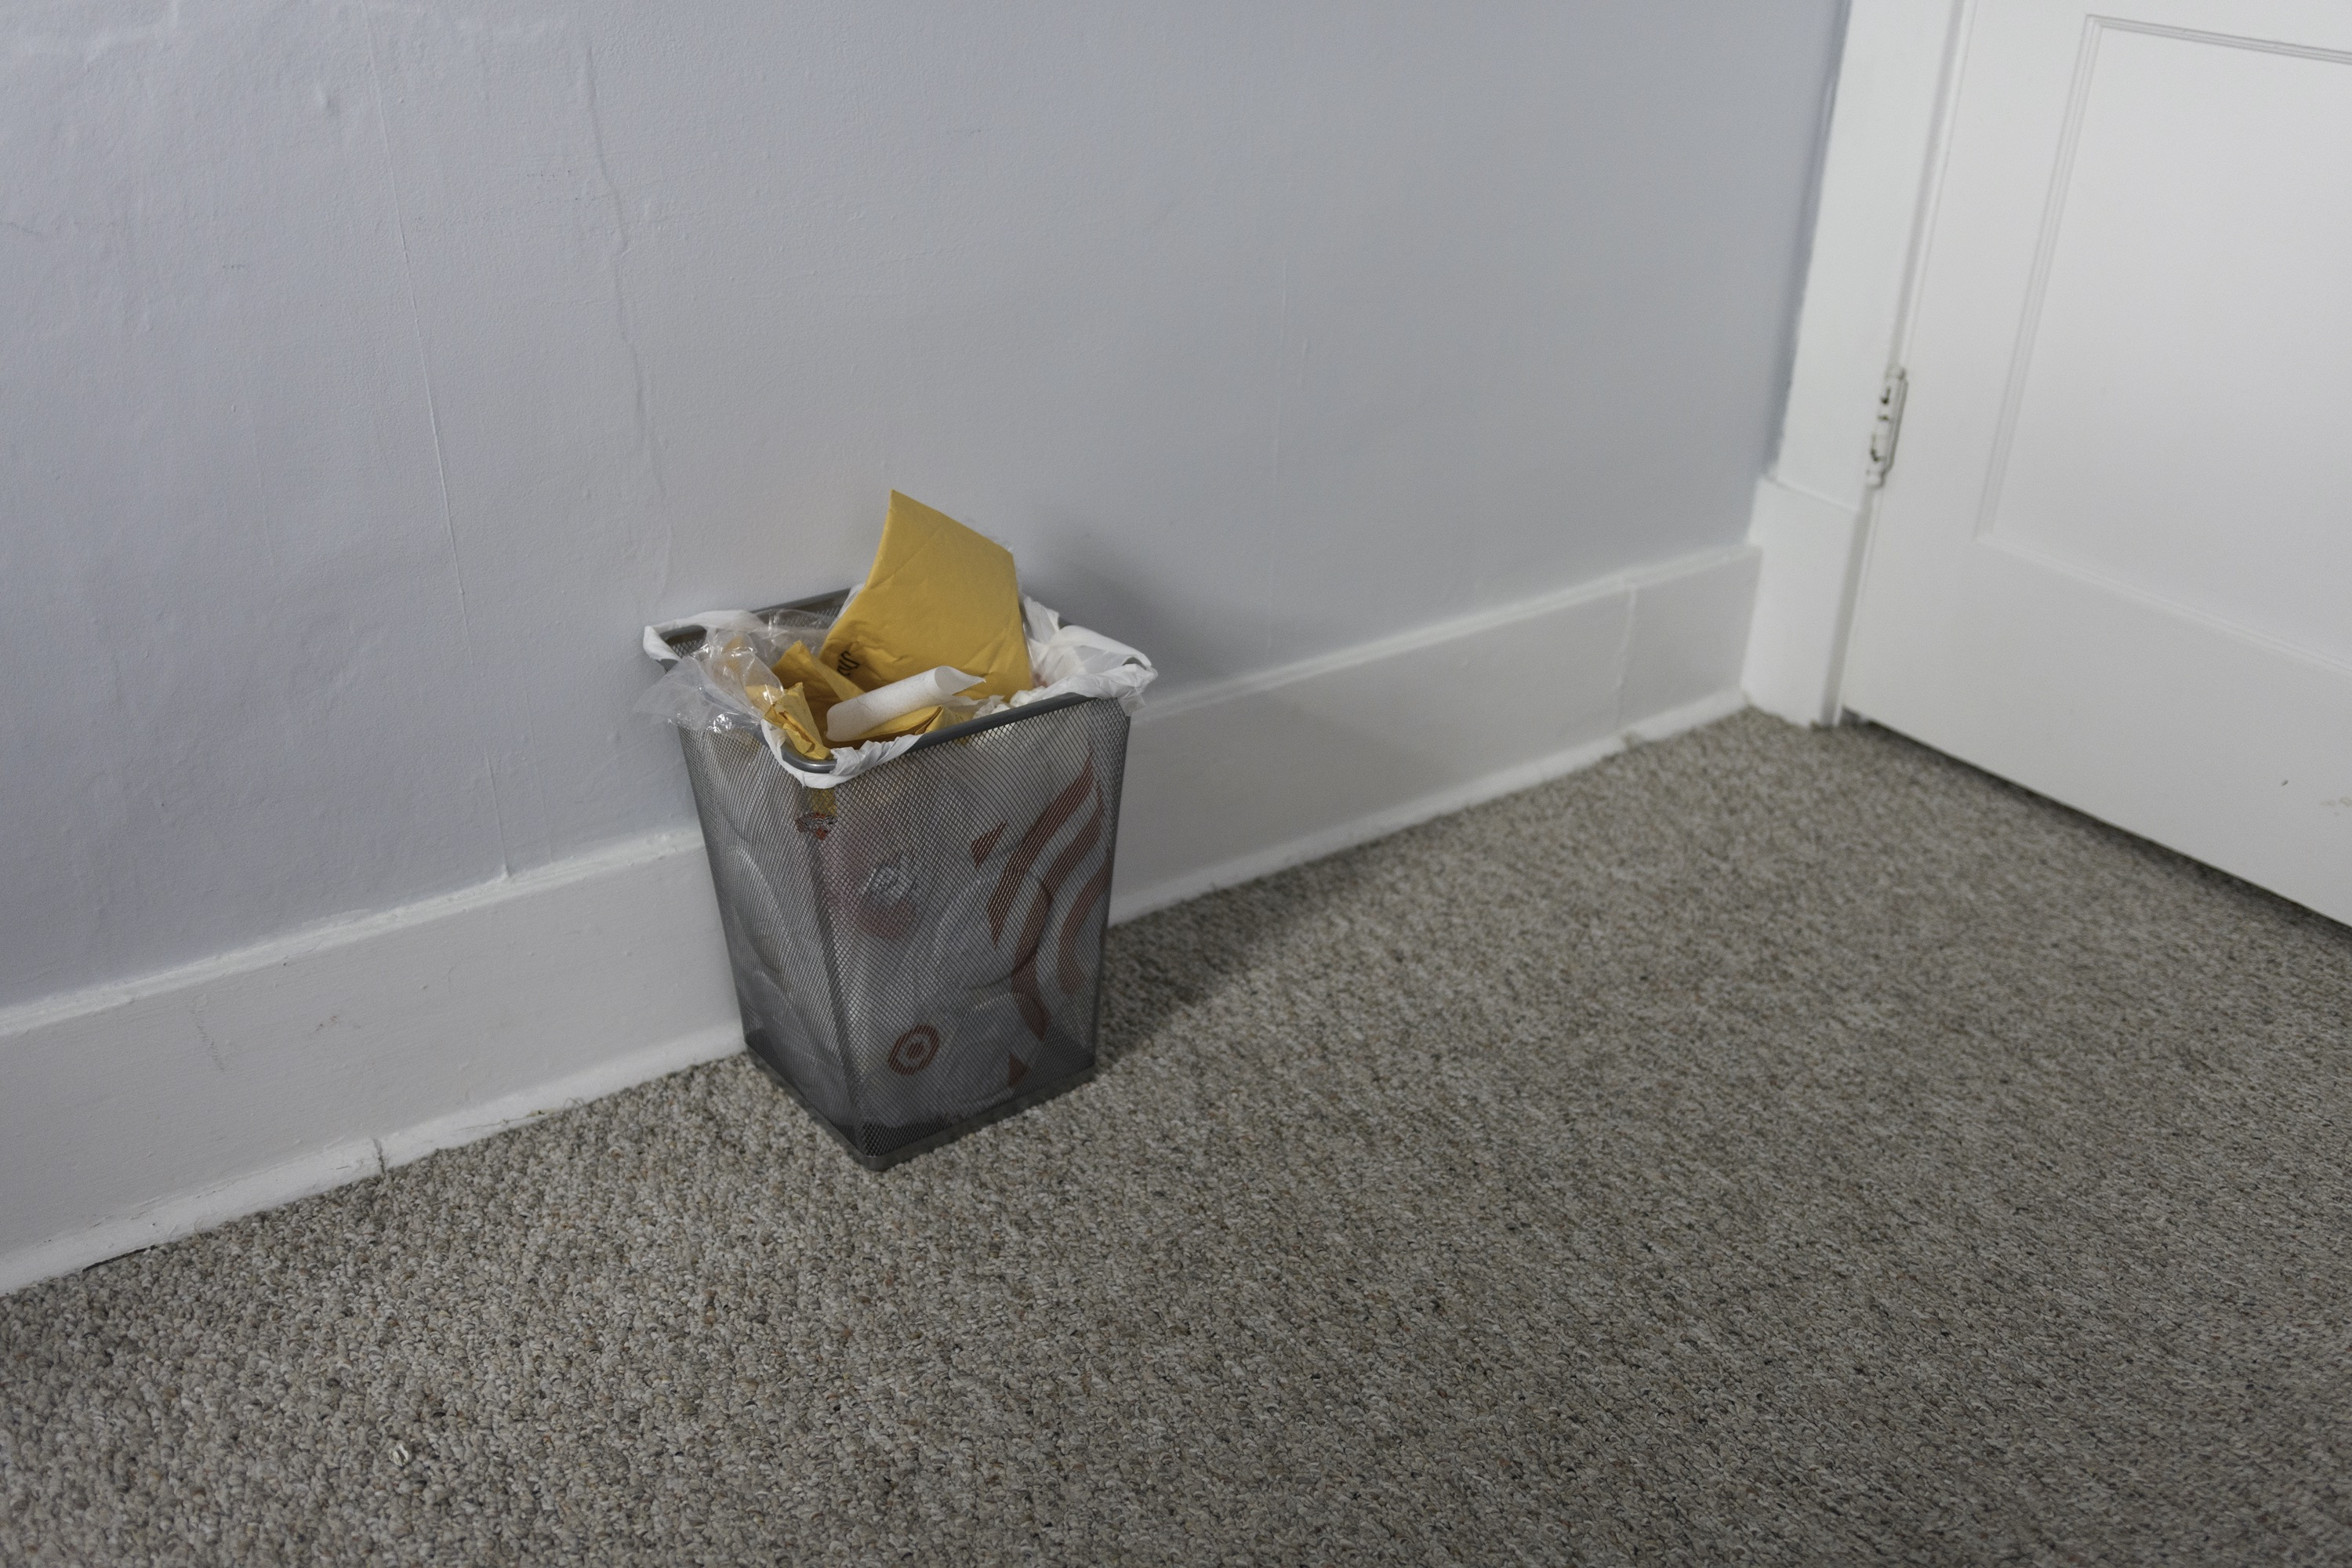 A small trashcan filled with yellow garbage sits on a beige carpet against a blue wall, next to a whitee door.